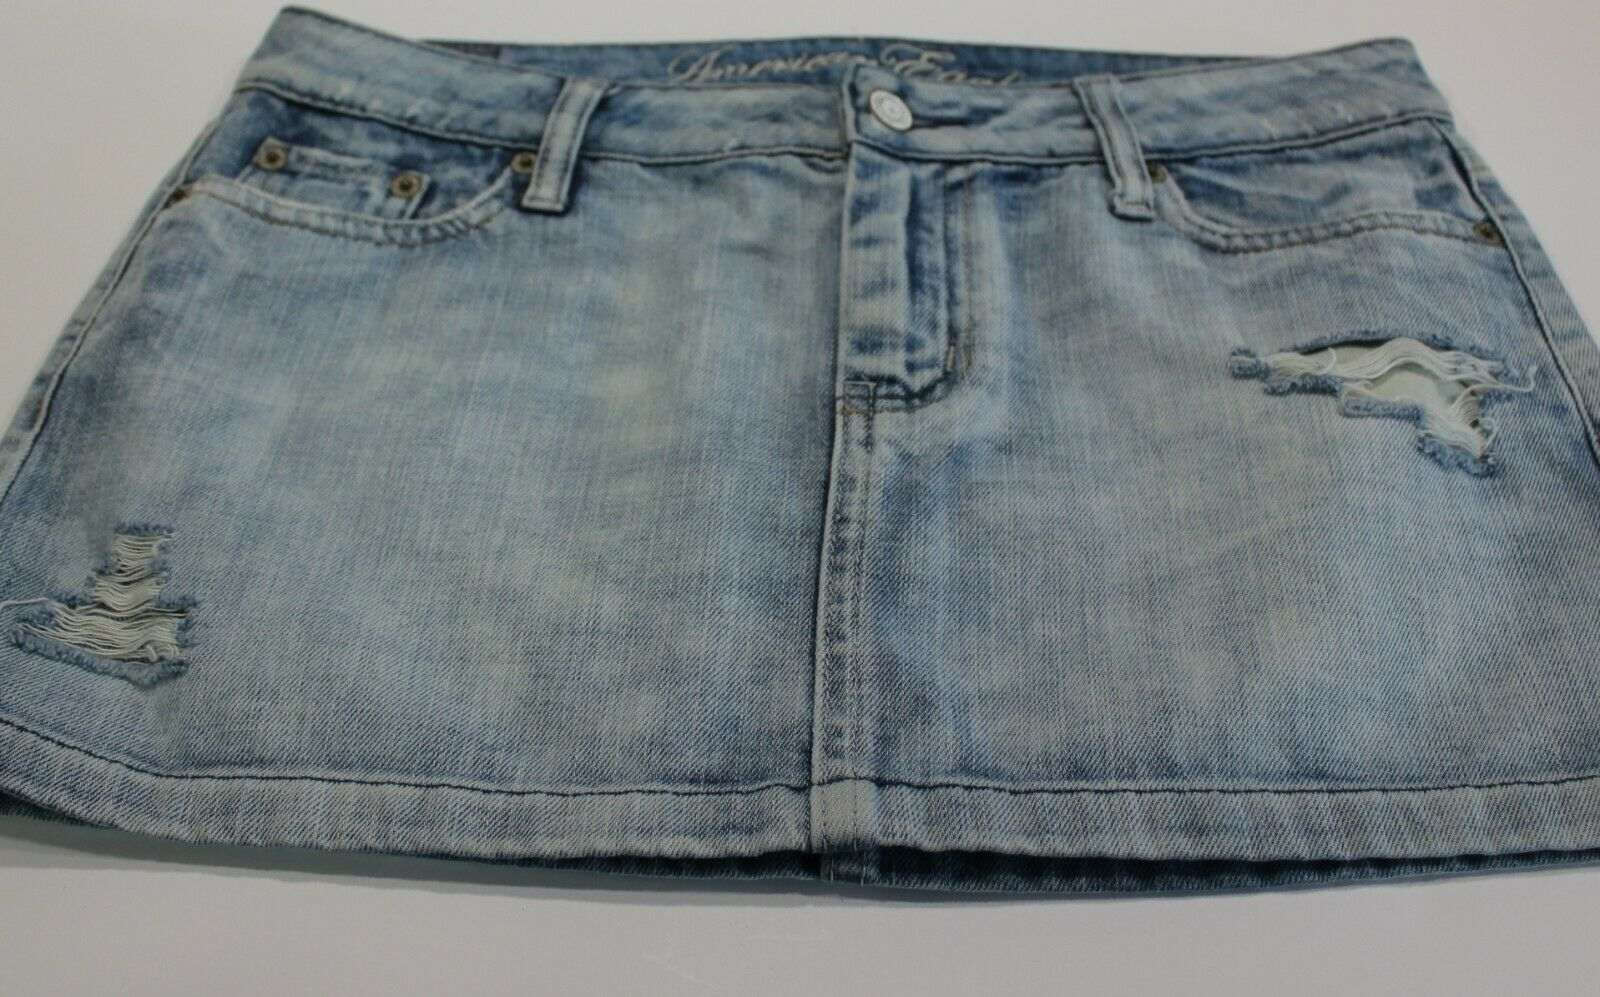 Primary image for American Eagle Denim Skirt Distressed Light Wash Size 4